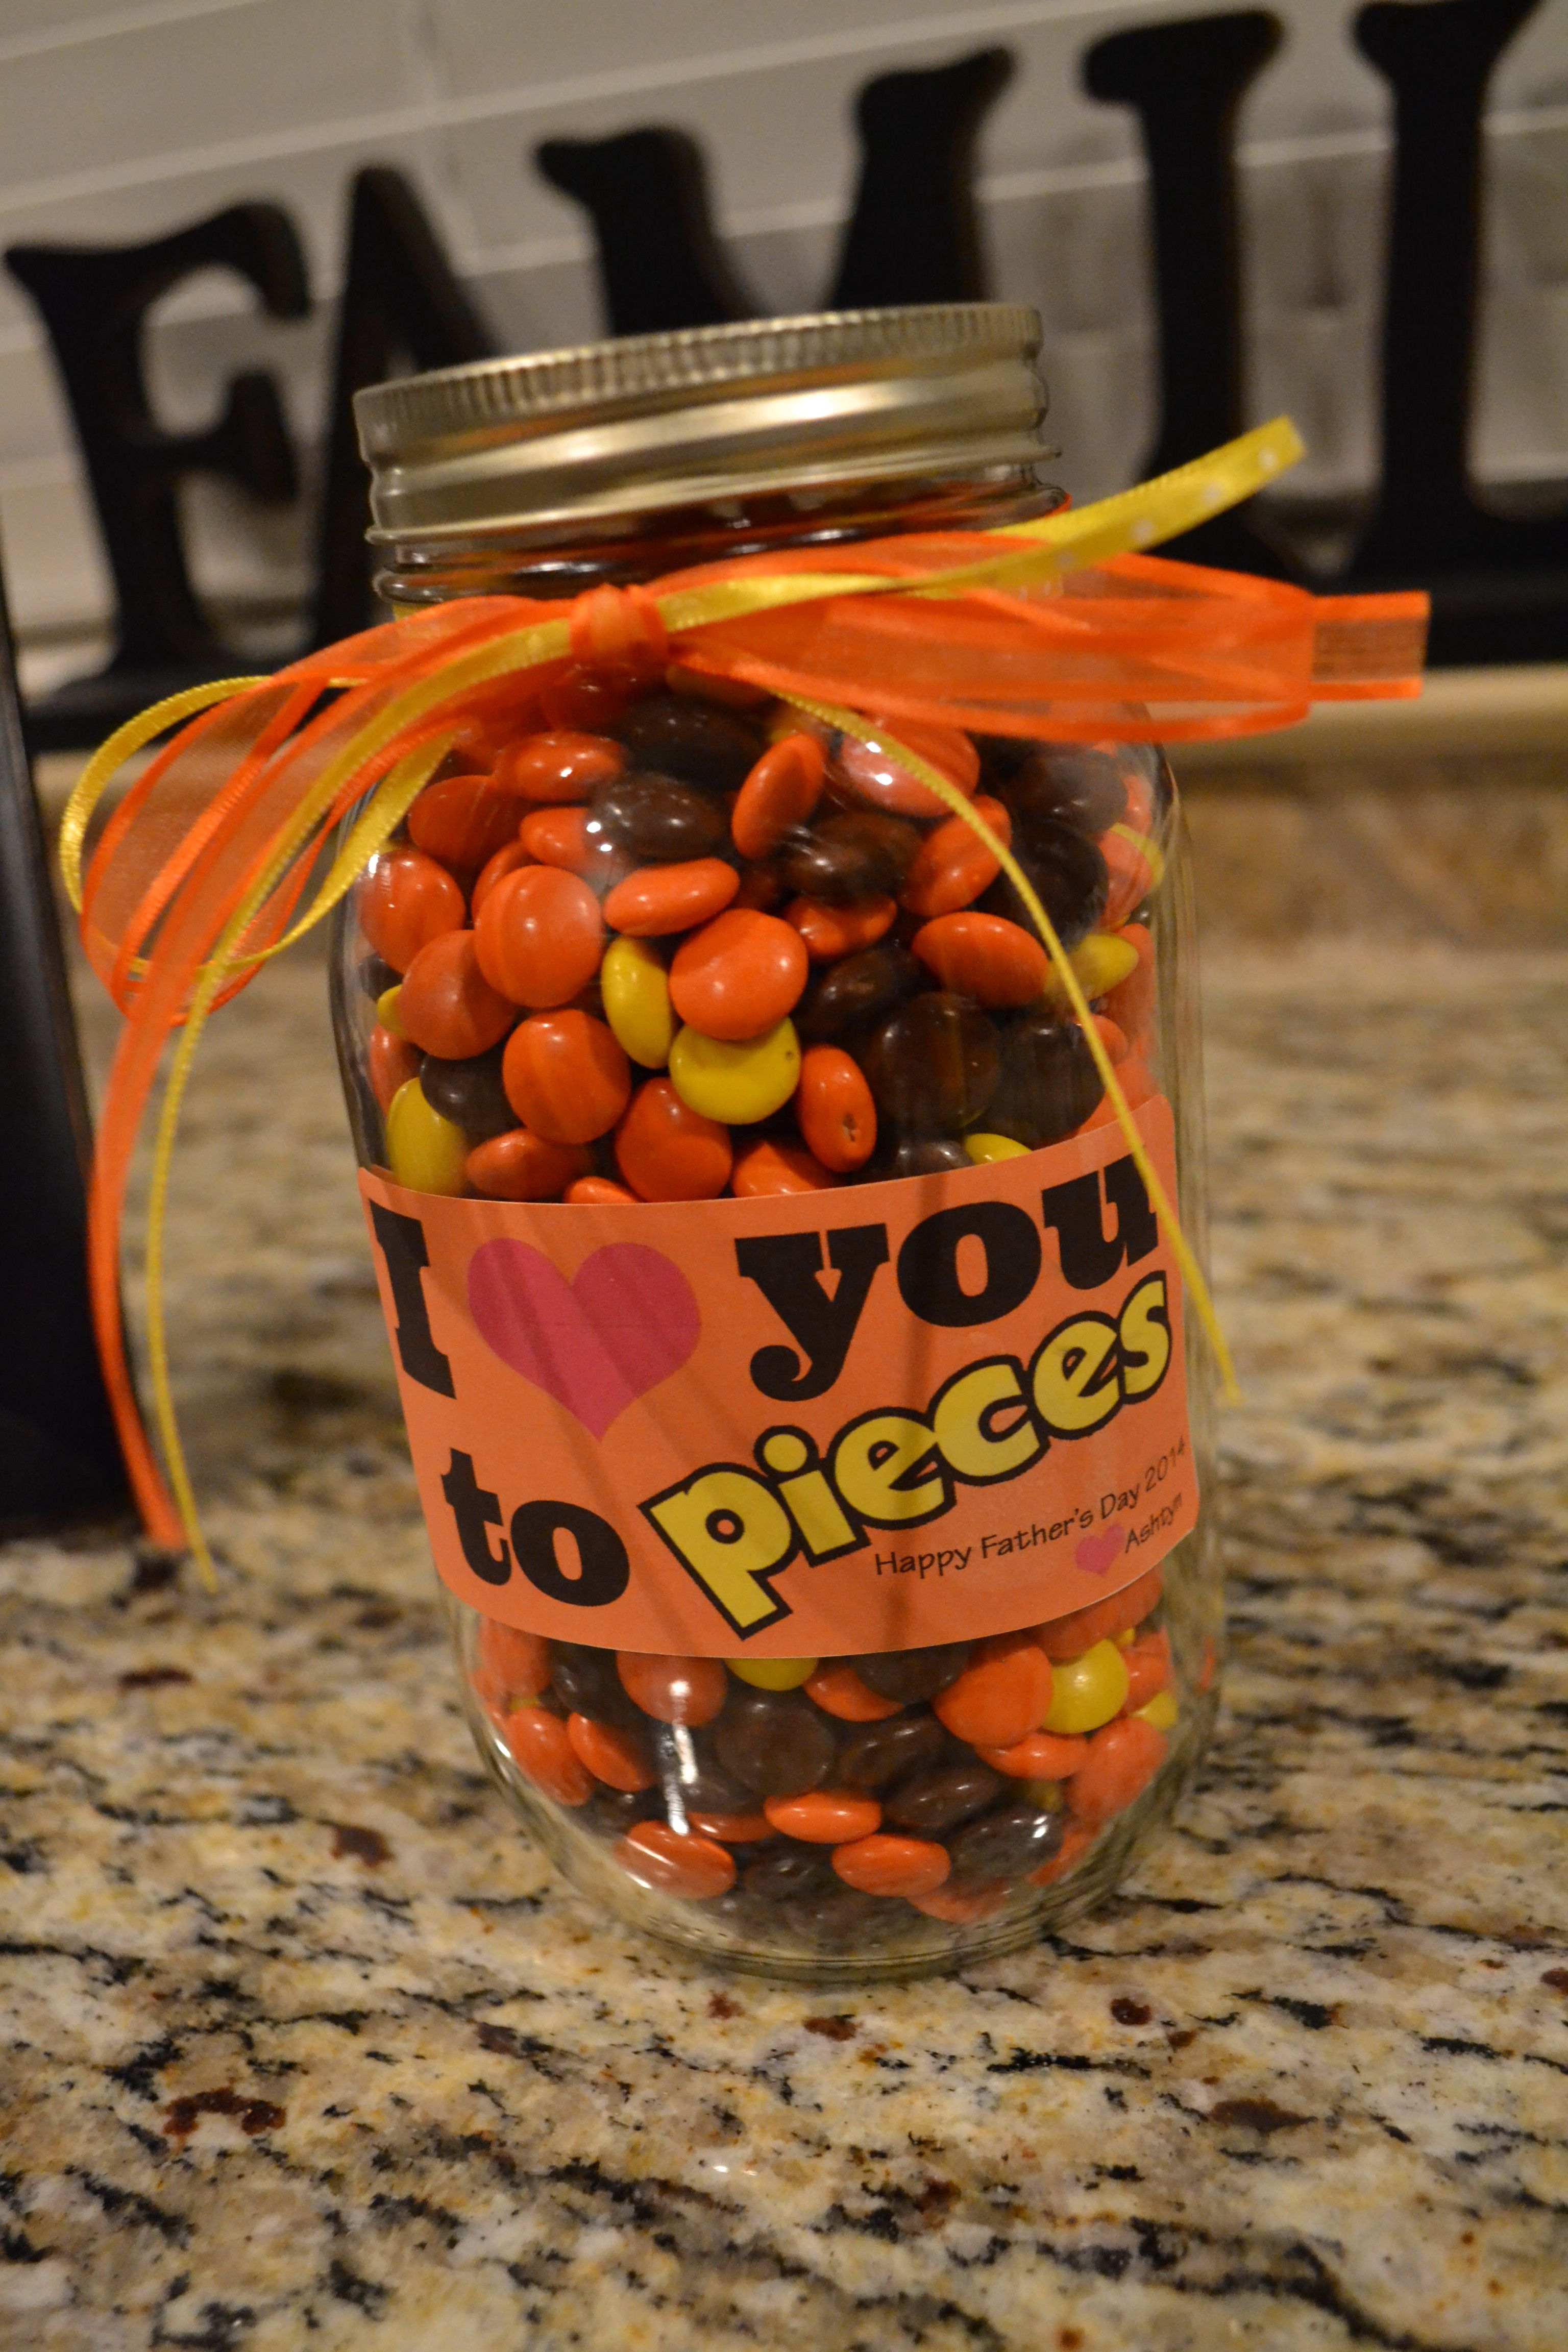 Fathers Day gift to daddyjar filled with his favorite